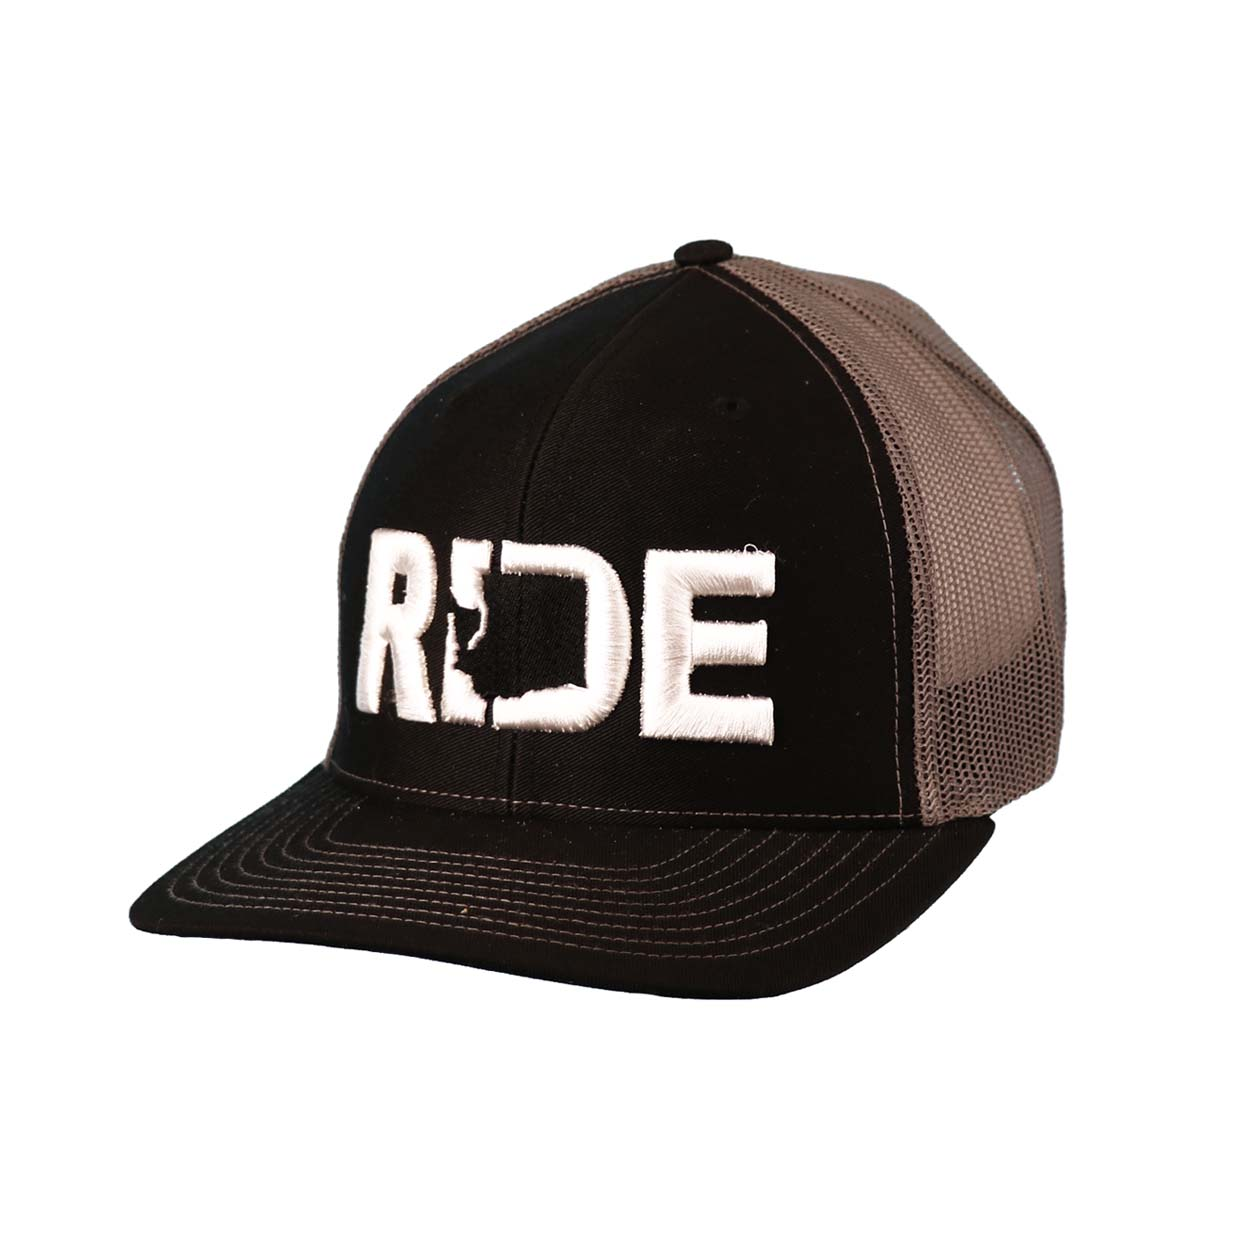 Ride Washington Classic Embroidered Snapback Trucker Hat Black/White